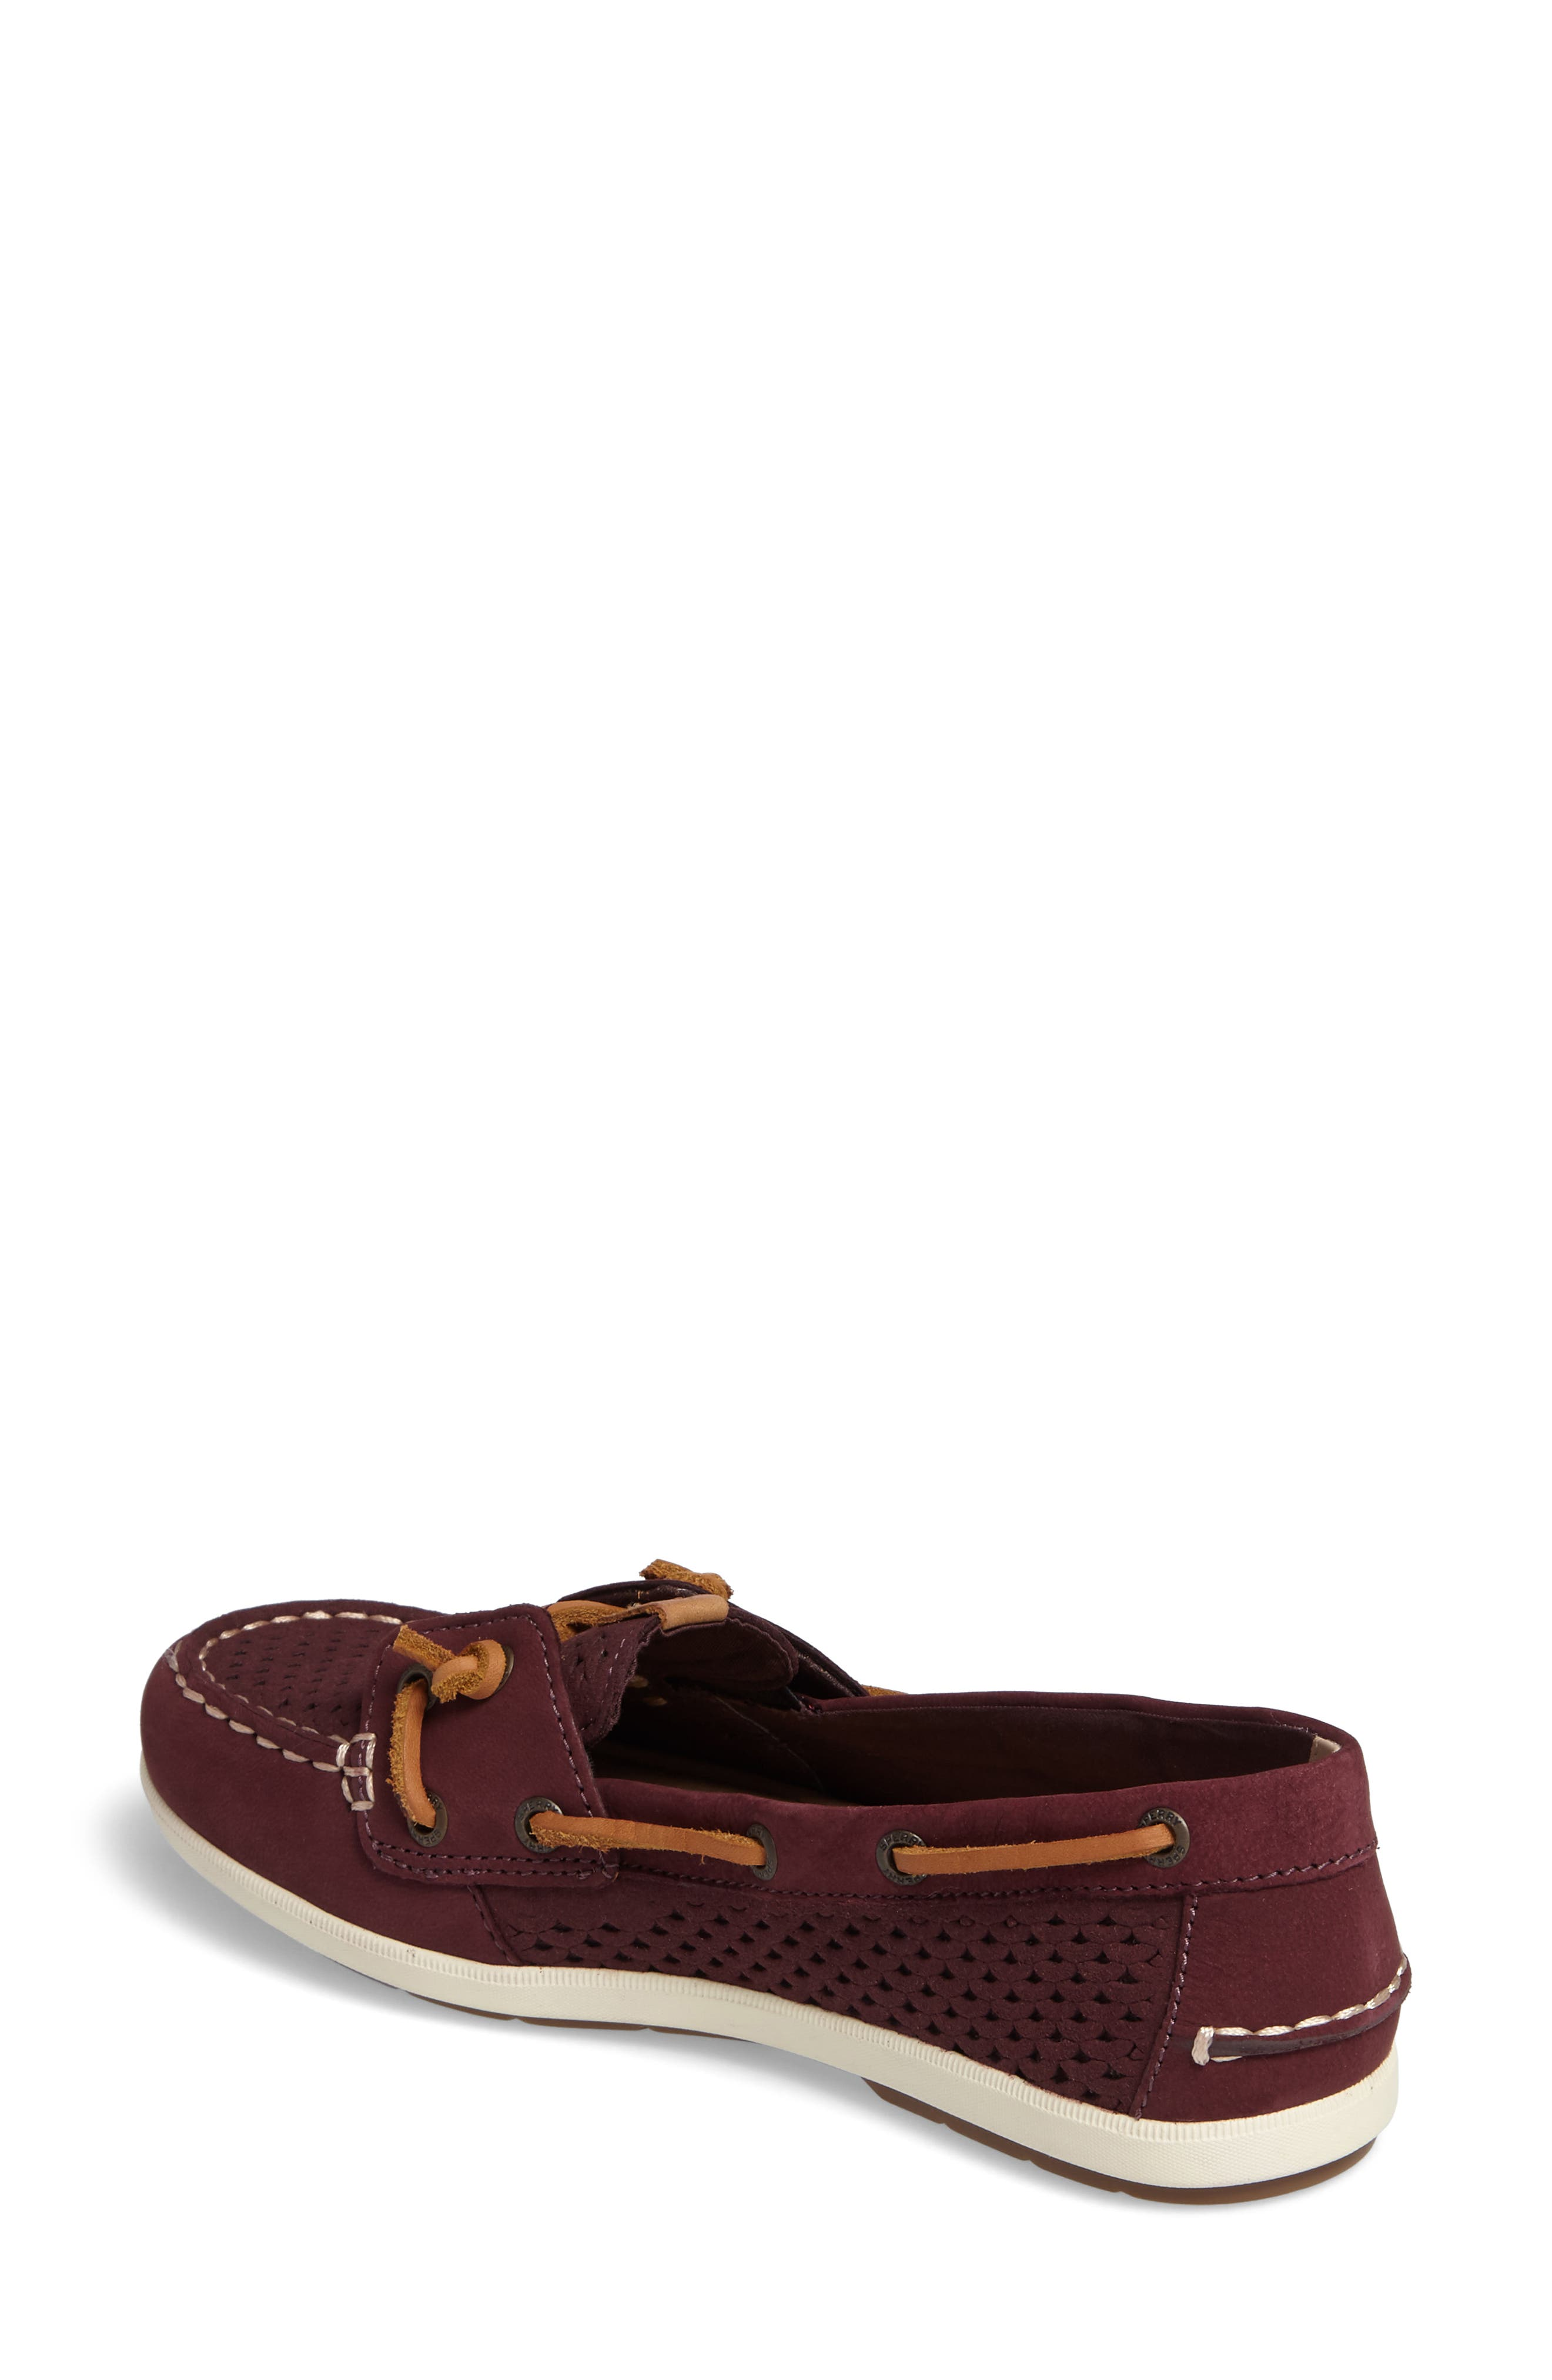 Alternate Image 2  - Sperry Coil Ivy Perforated Boat Shoe (Women)